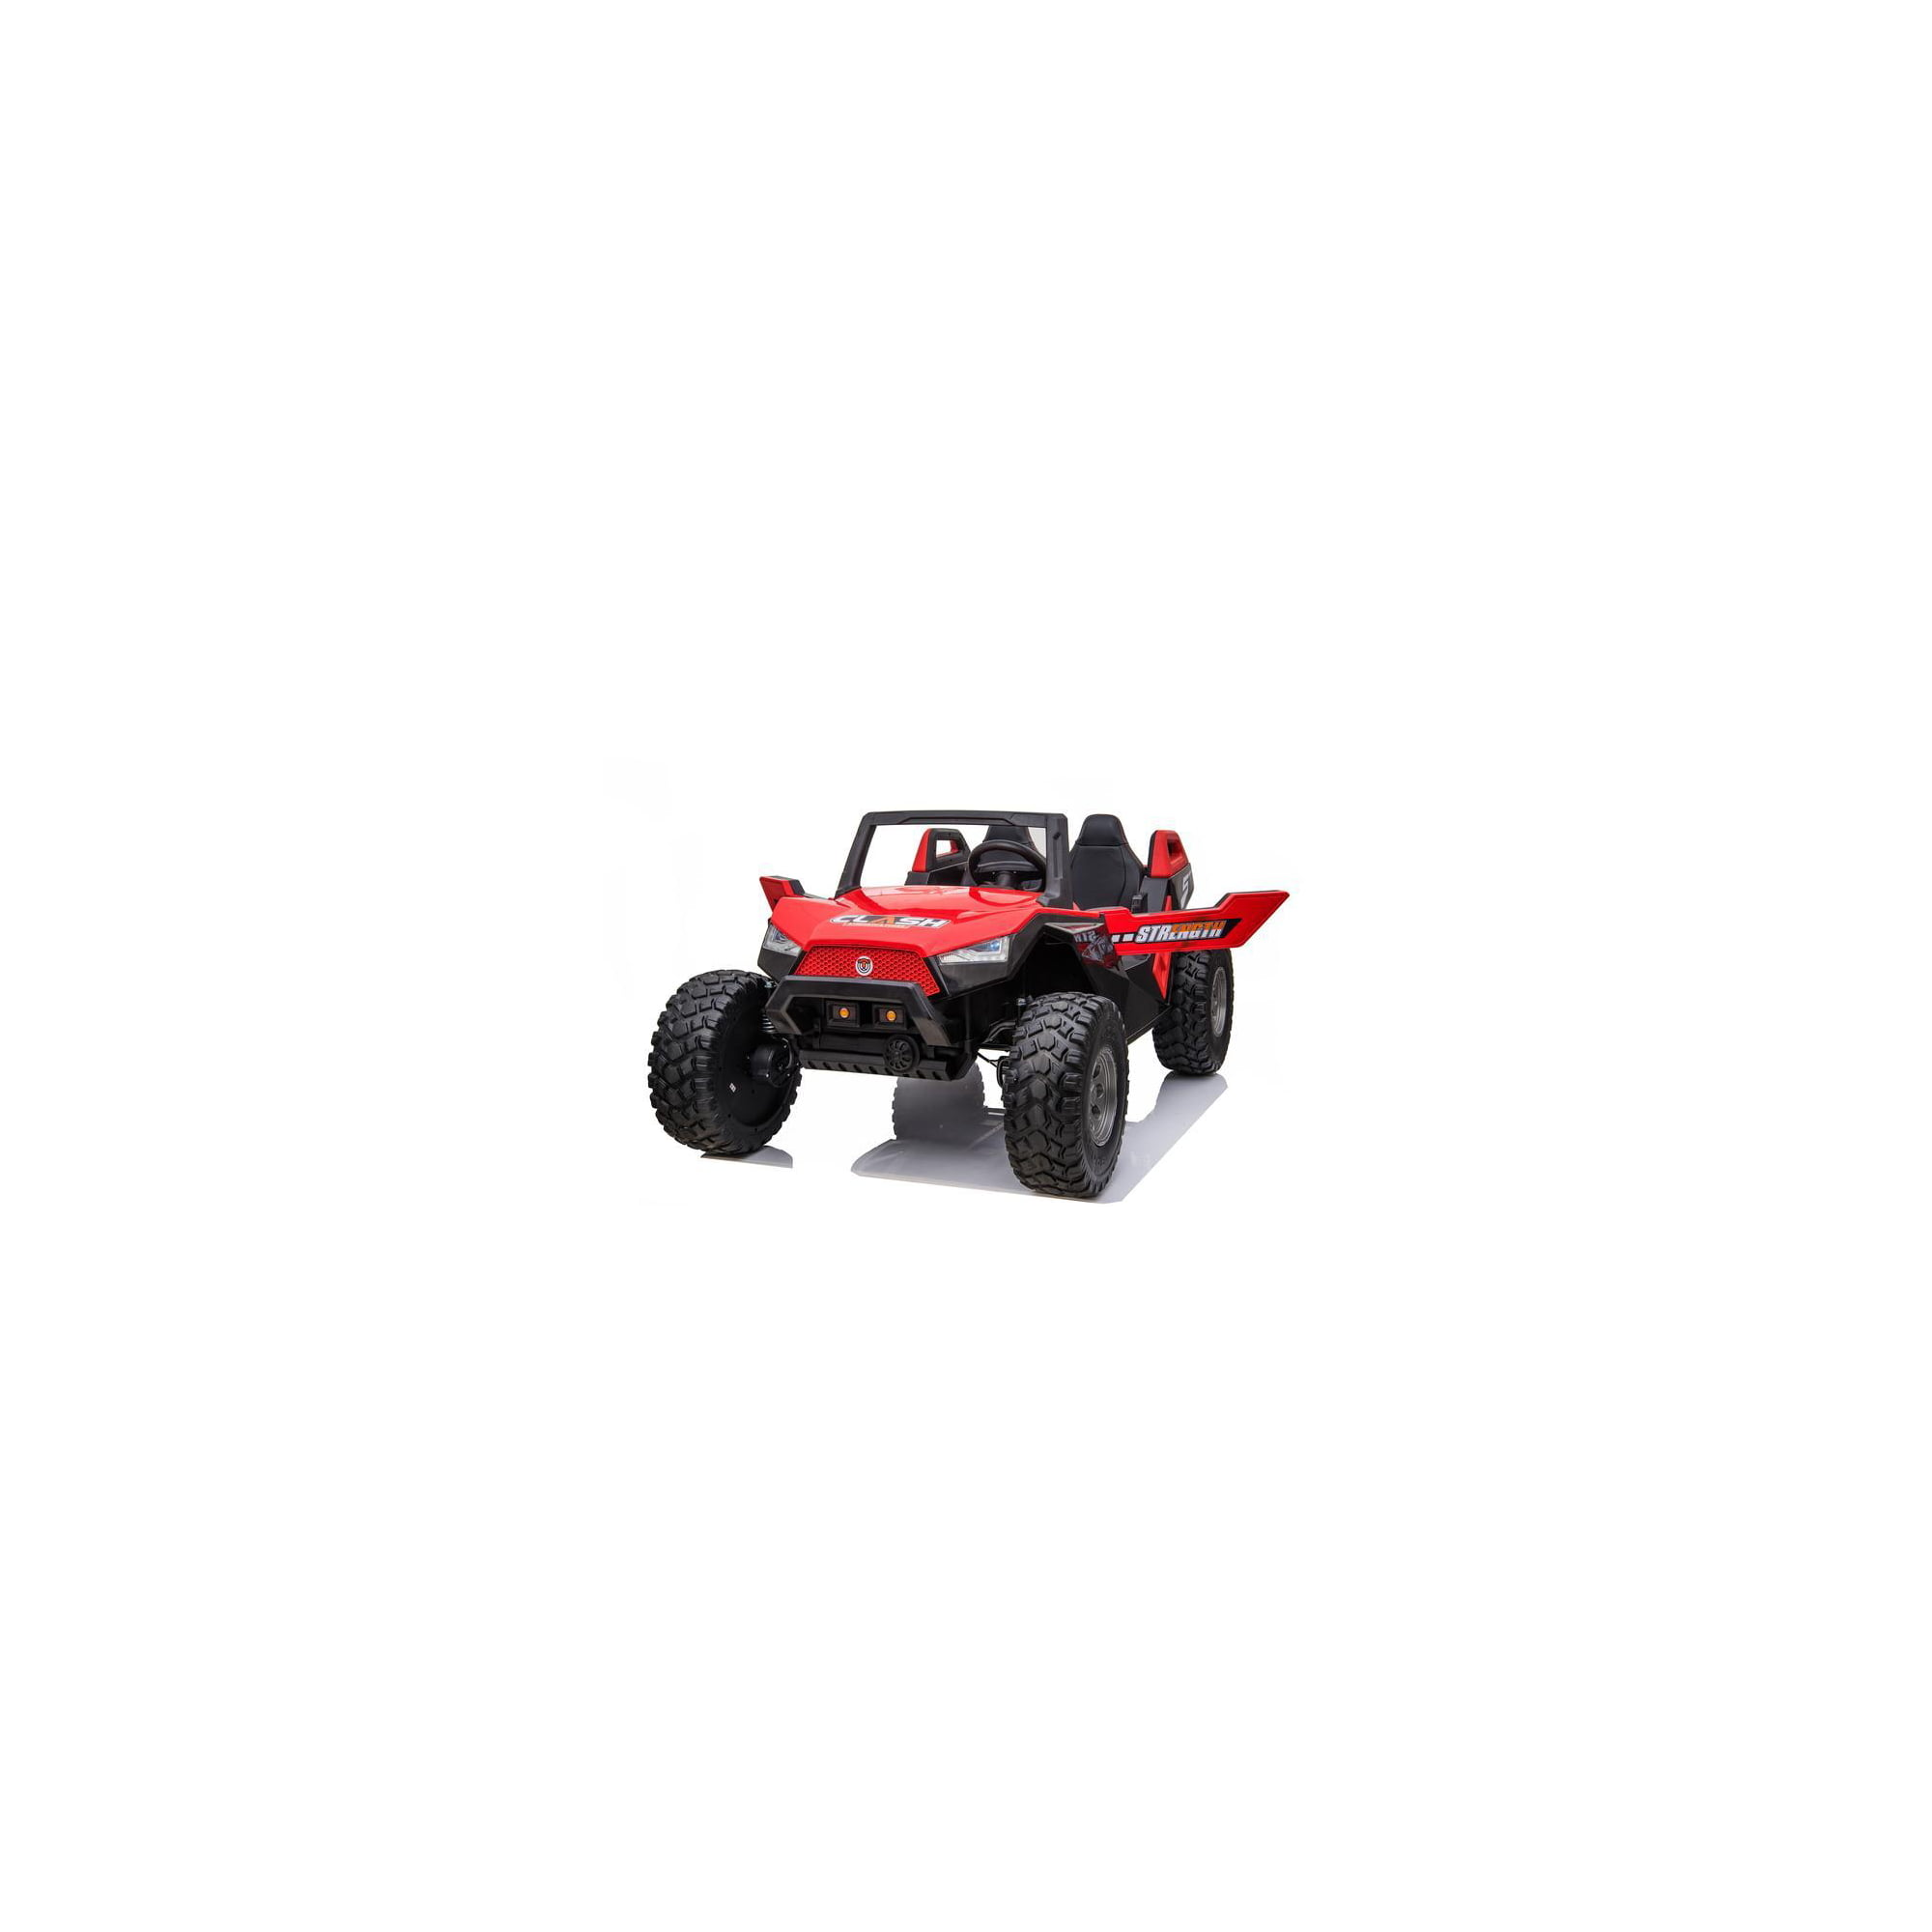 Dune Buggy Kids Ride On 24v 2 Seater Red In Stock Walmart Canada